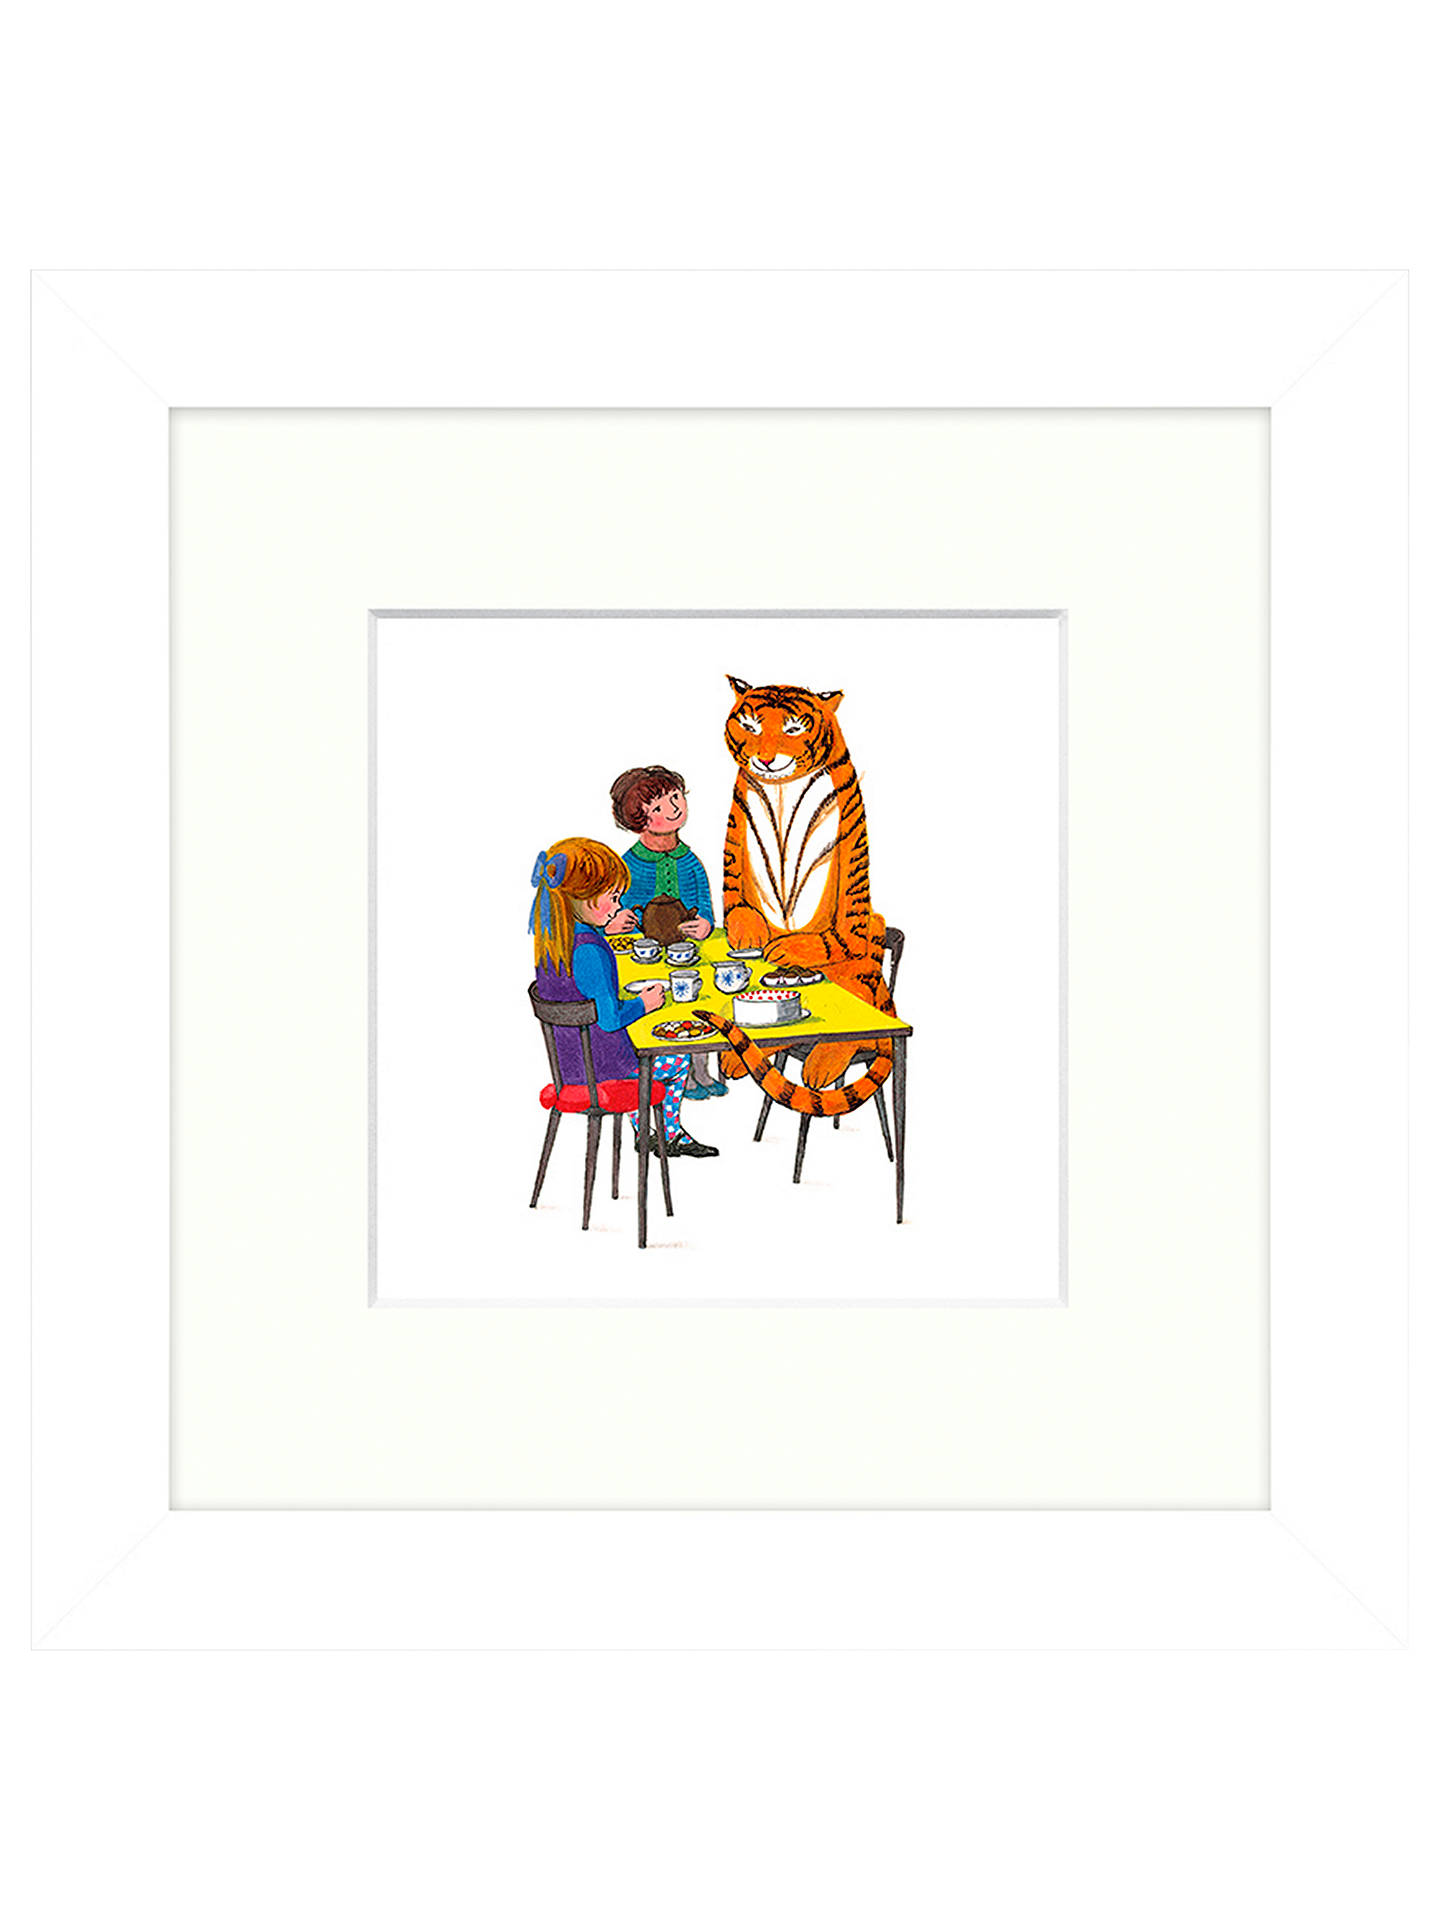 BuyJudith Kerr - Tea With Tiger Framed Print, 23 x 23cm Online at johnlewis.com